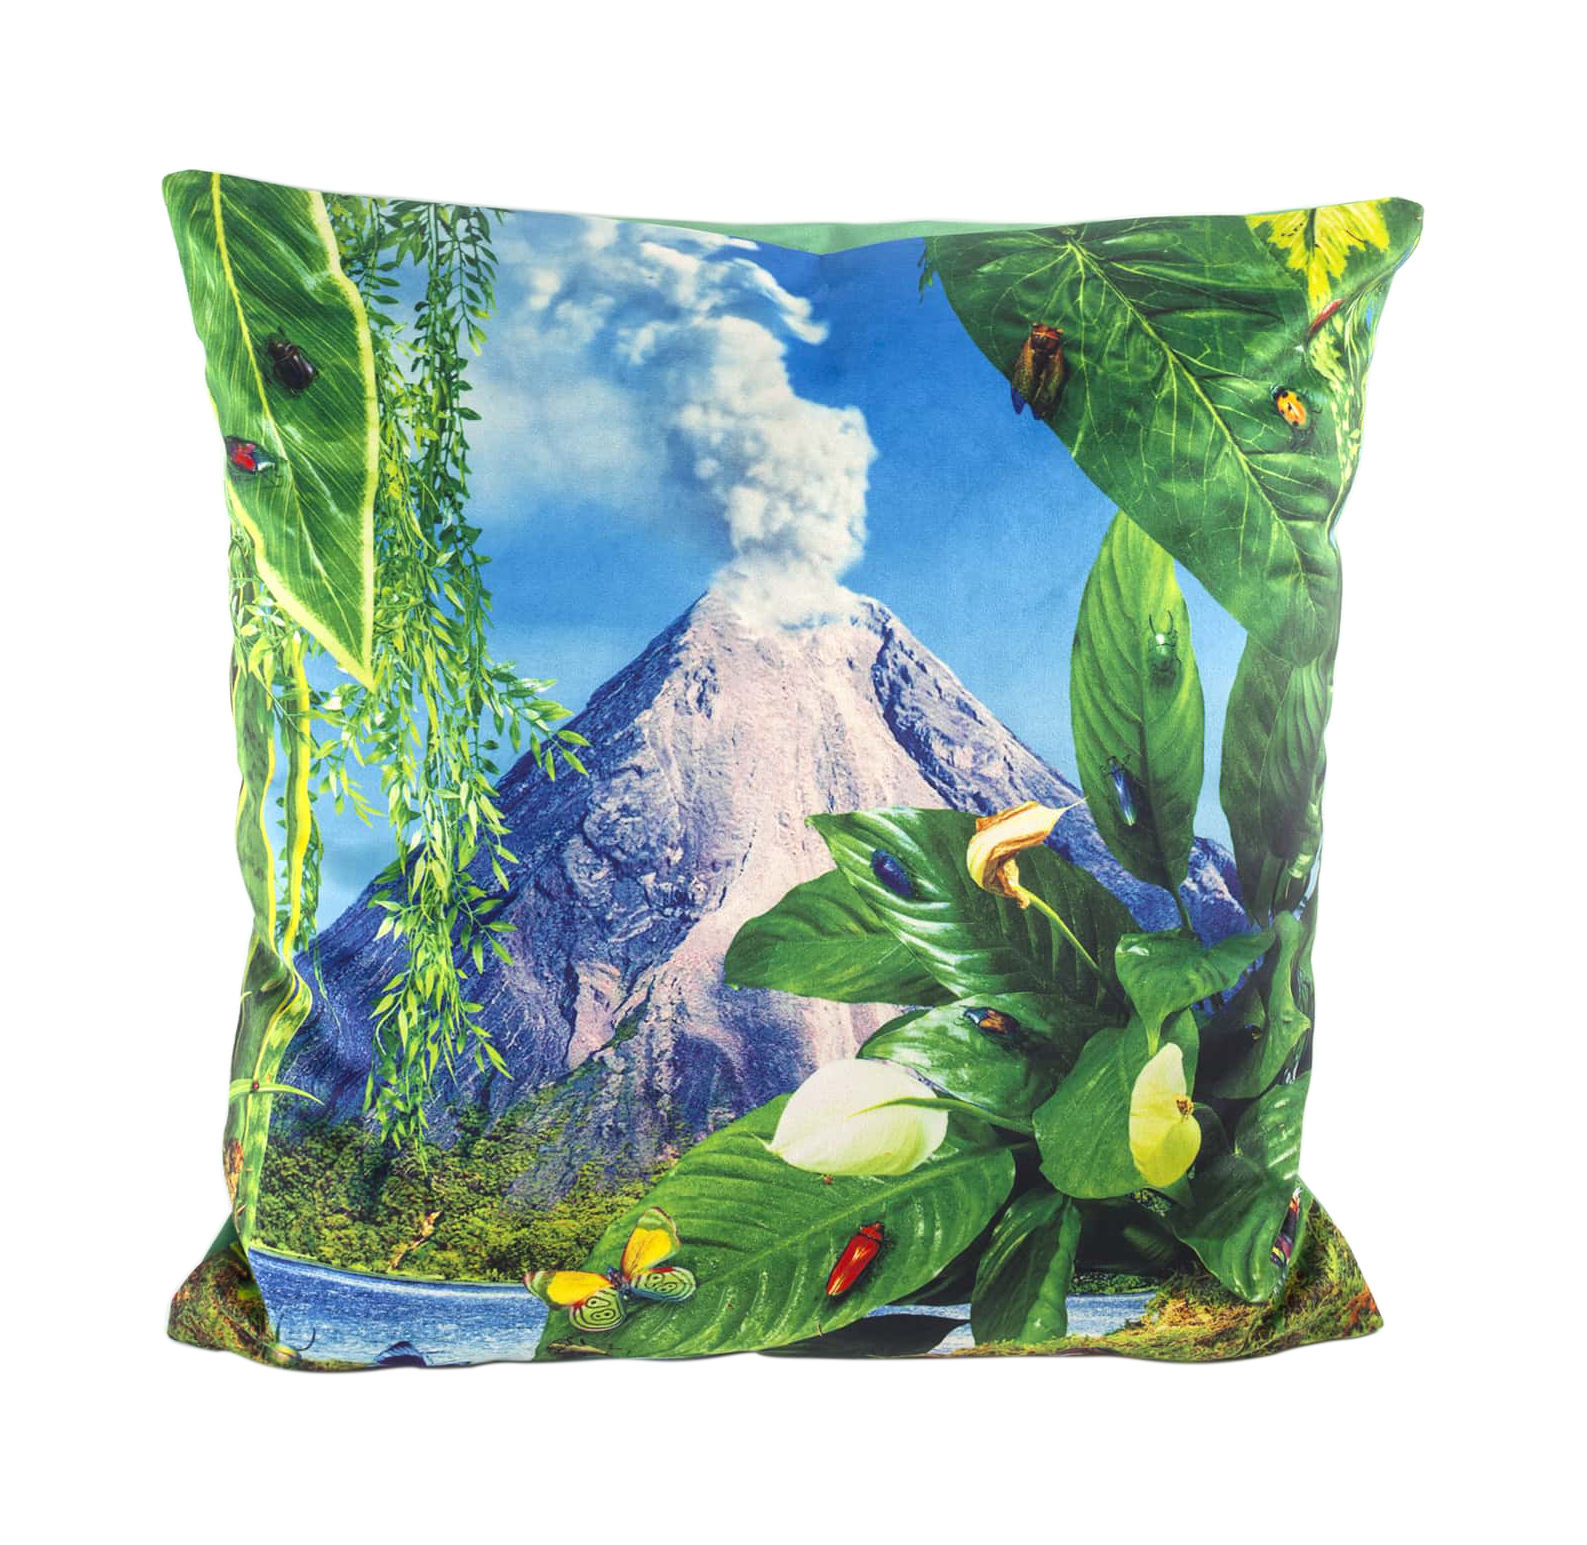 Decoration - Cushions & Poufs - Toiletpaper Cushion - / Volcan - 50 x 50 cm by Seletti - Volcan / Vert - Feathers, Polyester fabric